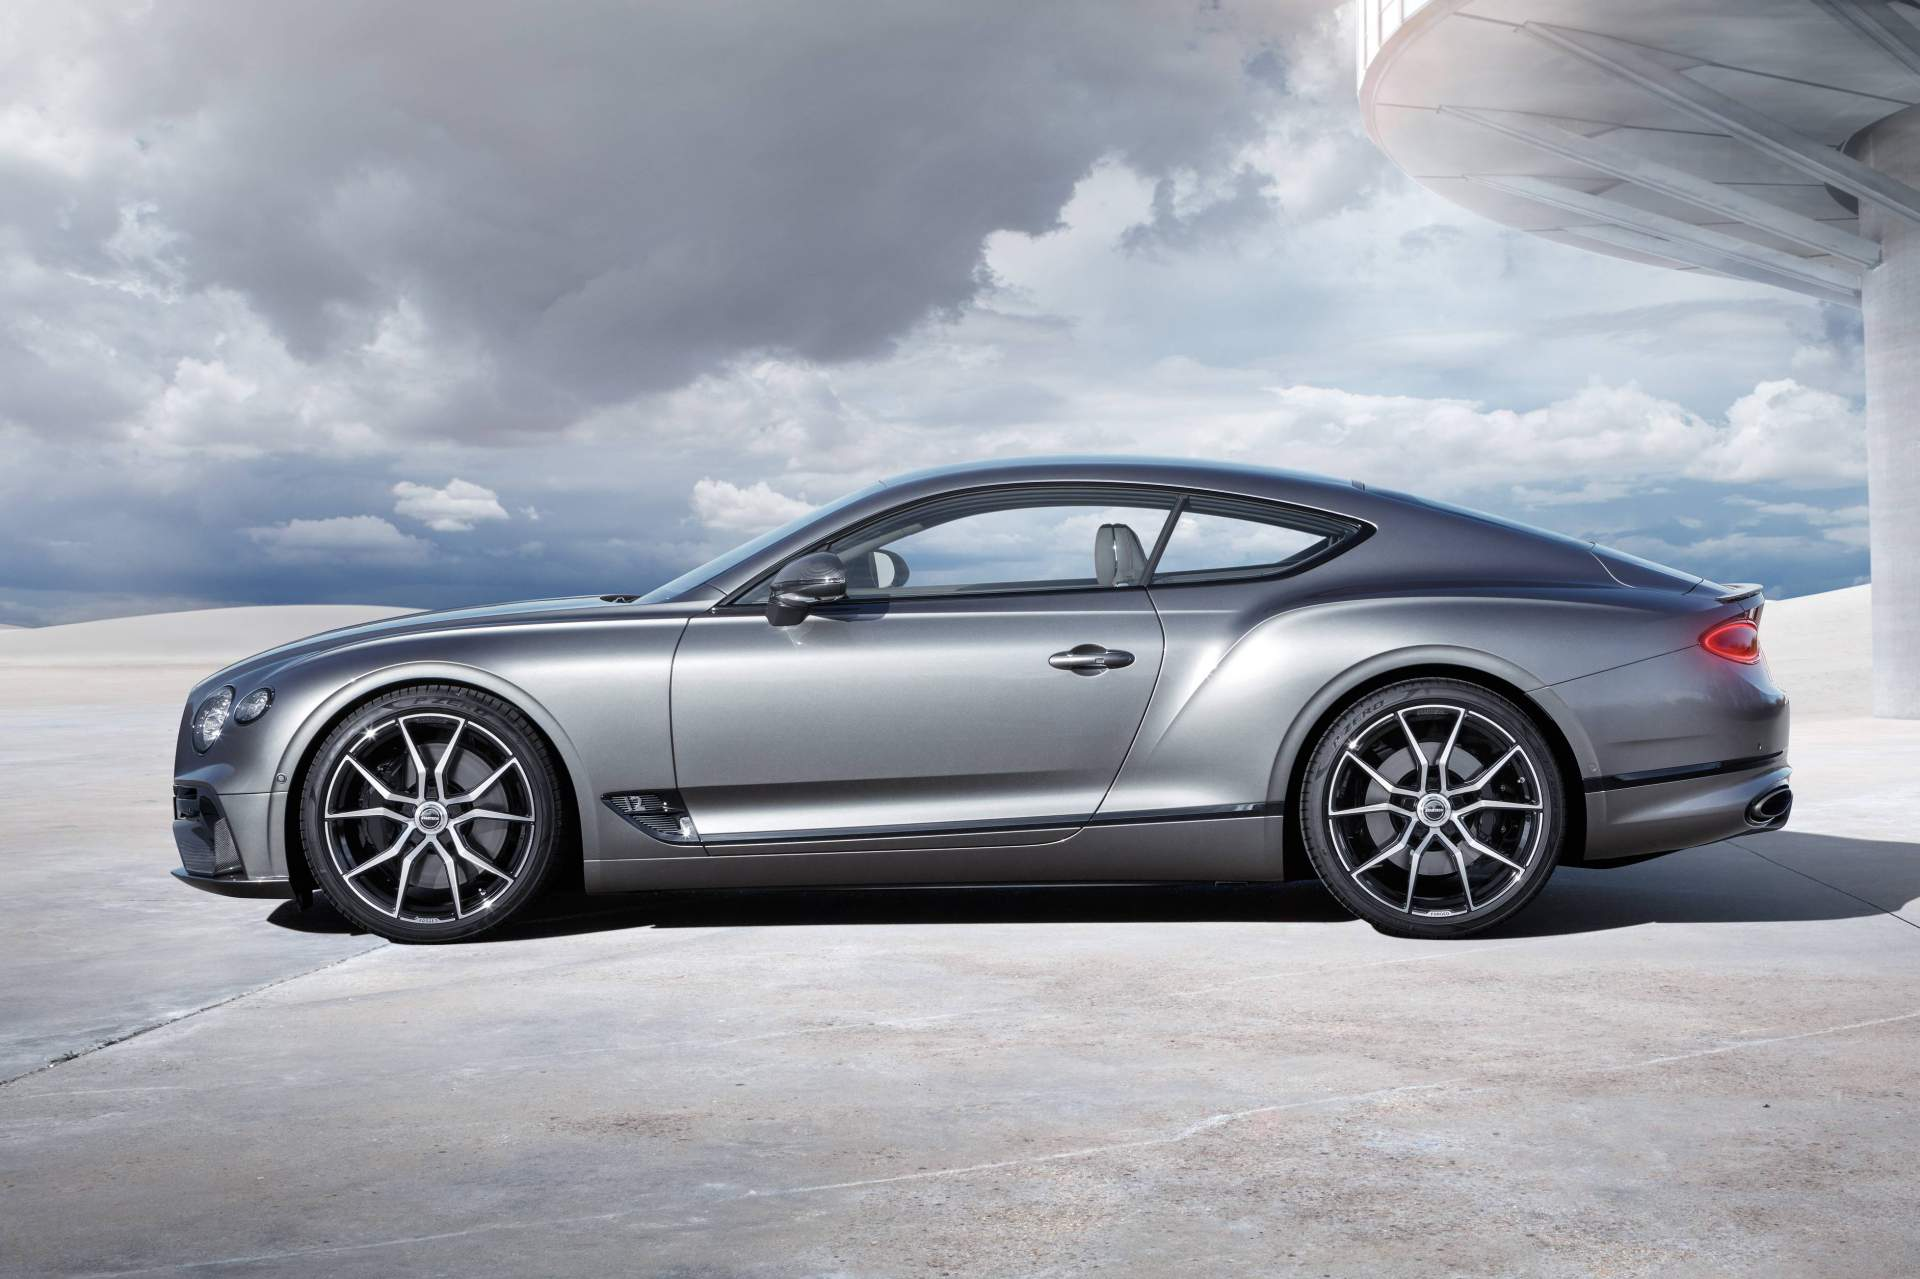 b5858ea0-startech-bentley-continental-gt-2